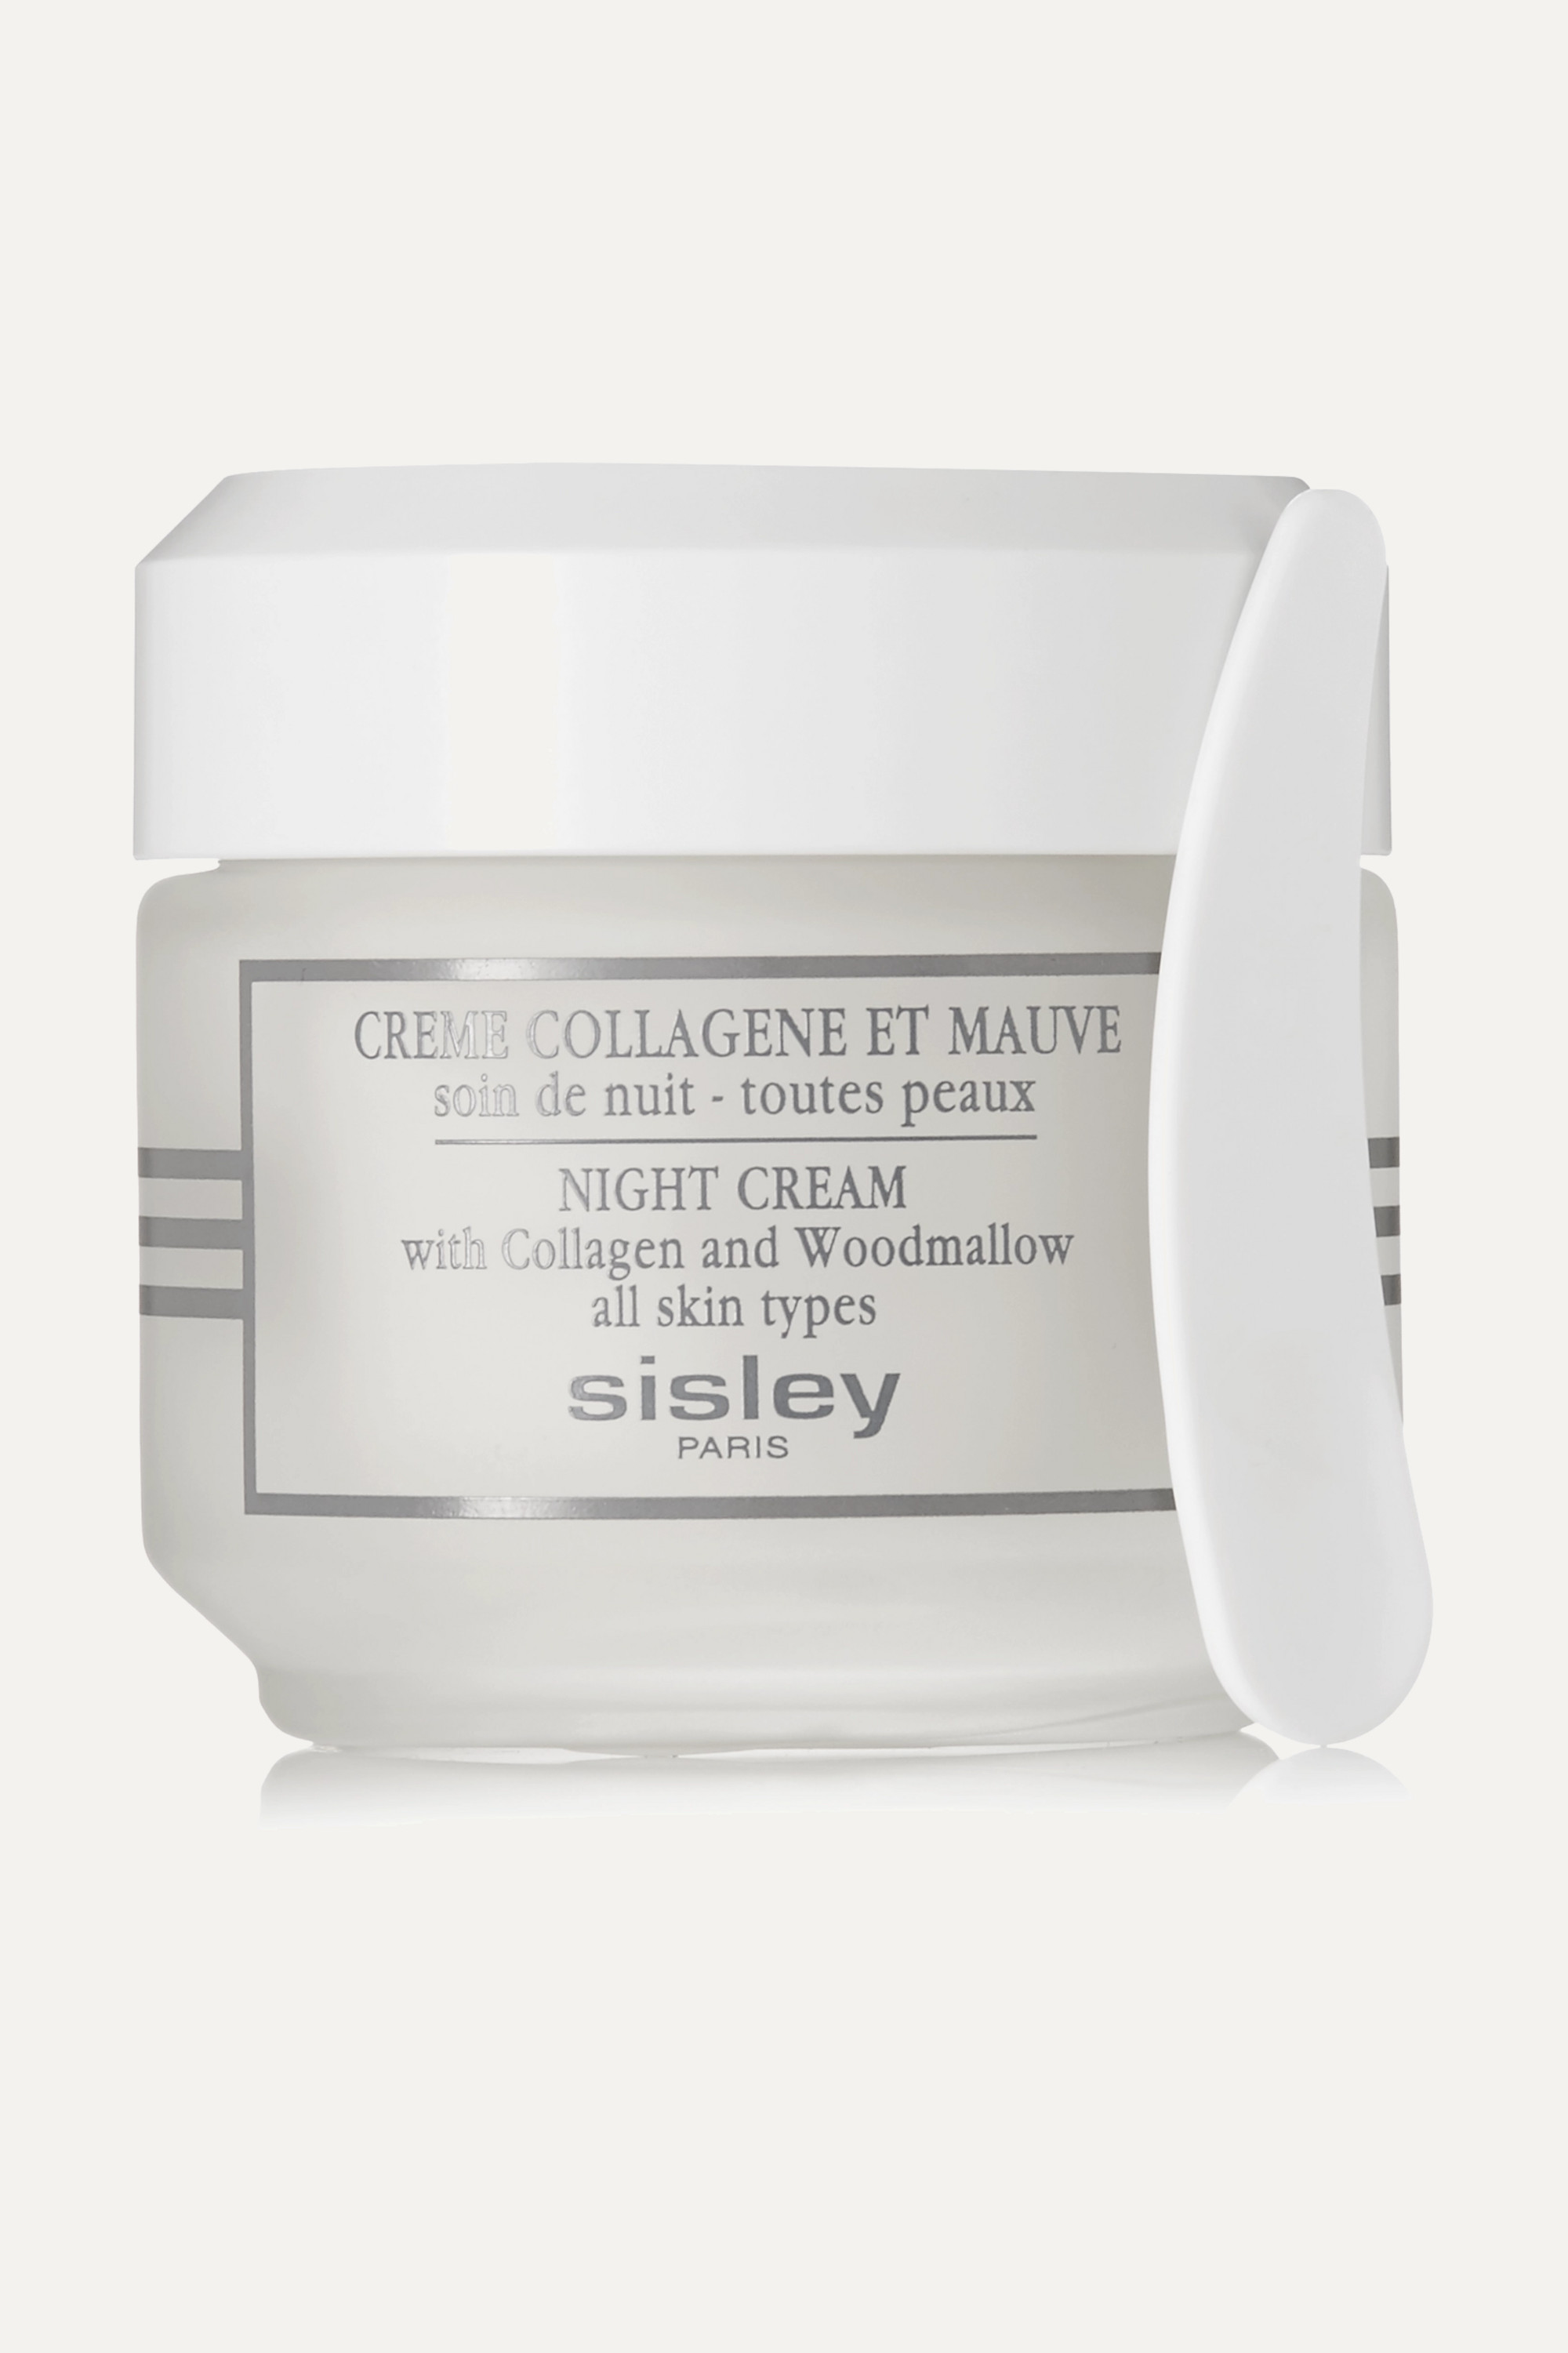 Sisley Night Cream with Collagen and Woodmallow, 50ml